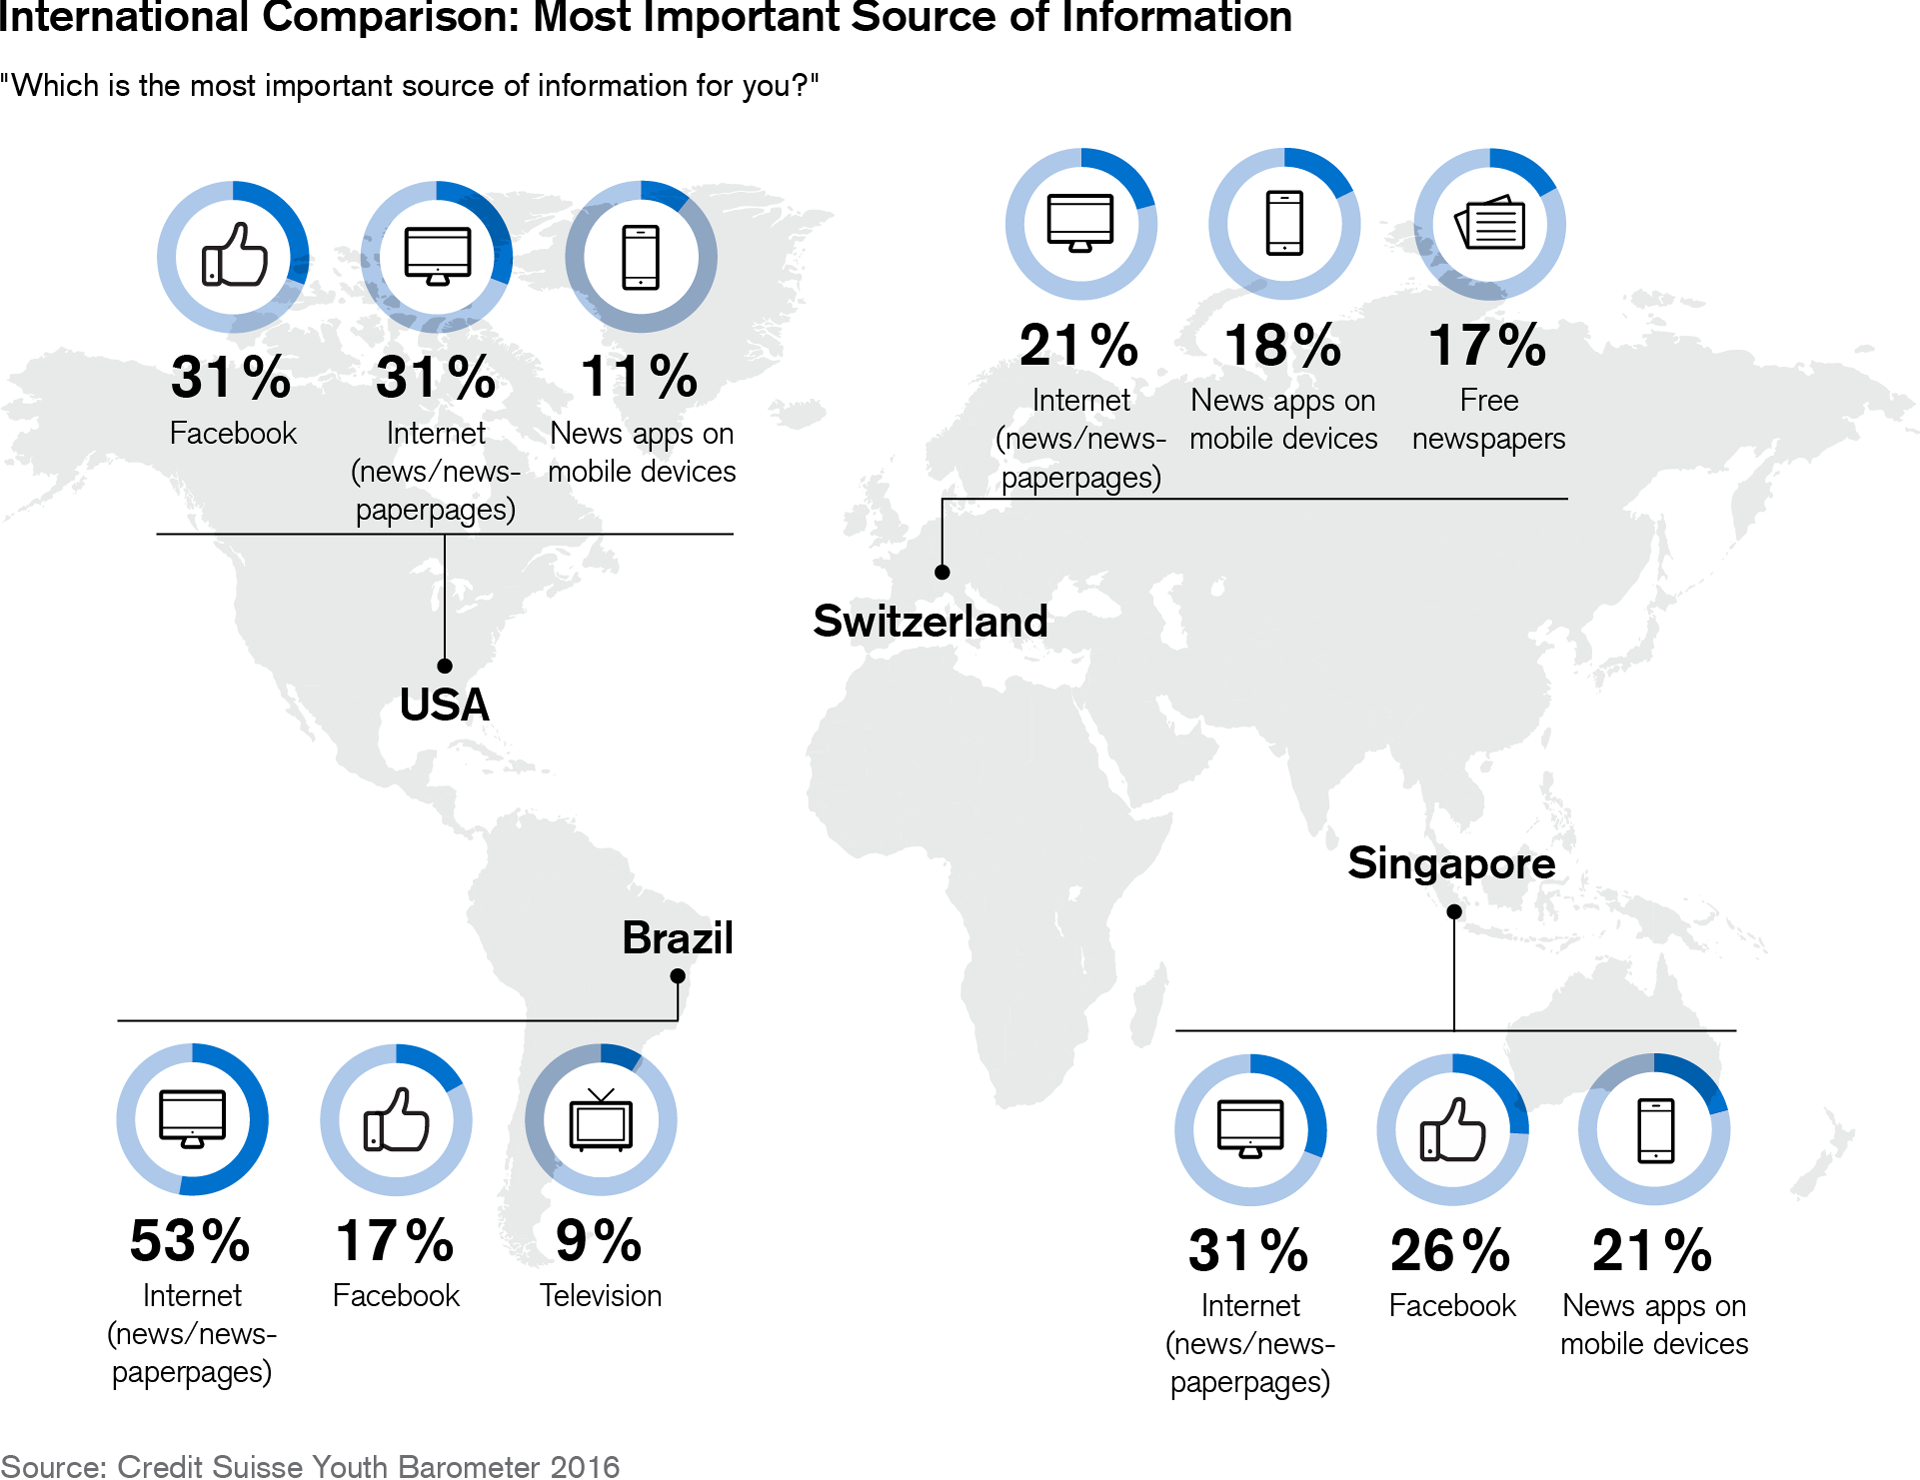 International Comparison: Most important source of information